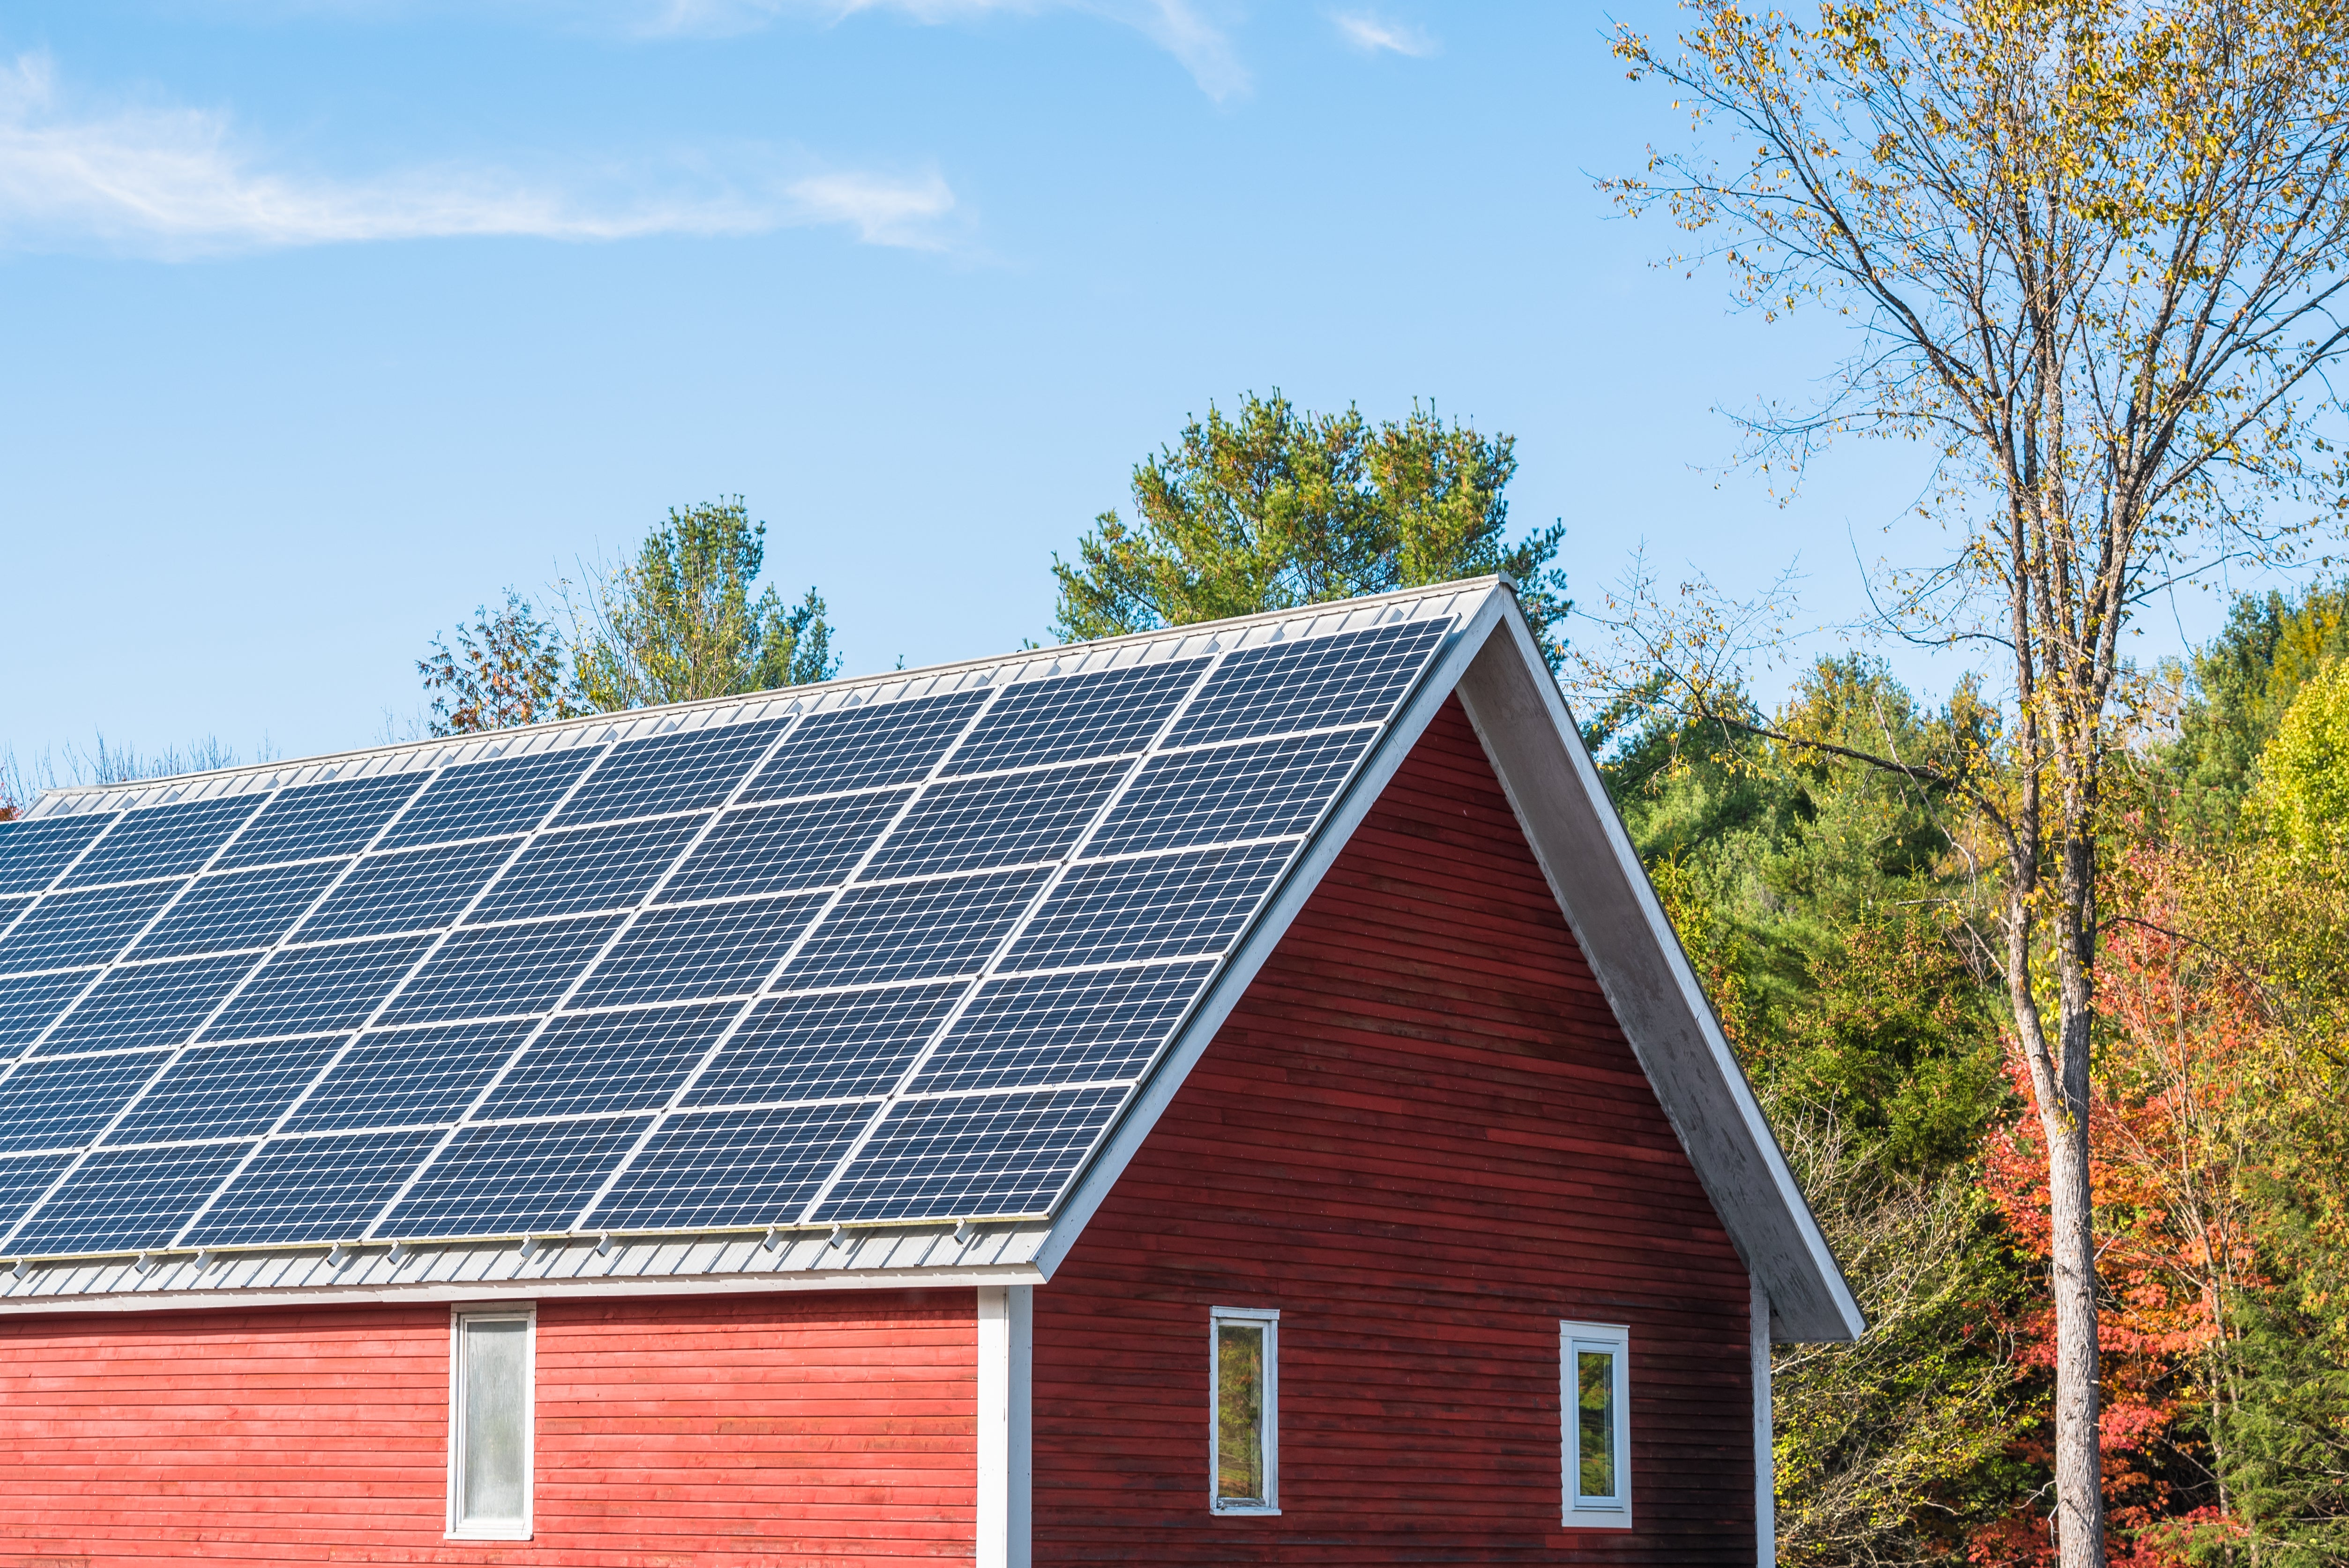 2019 Was a Record Year for U.S. Solar Power